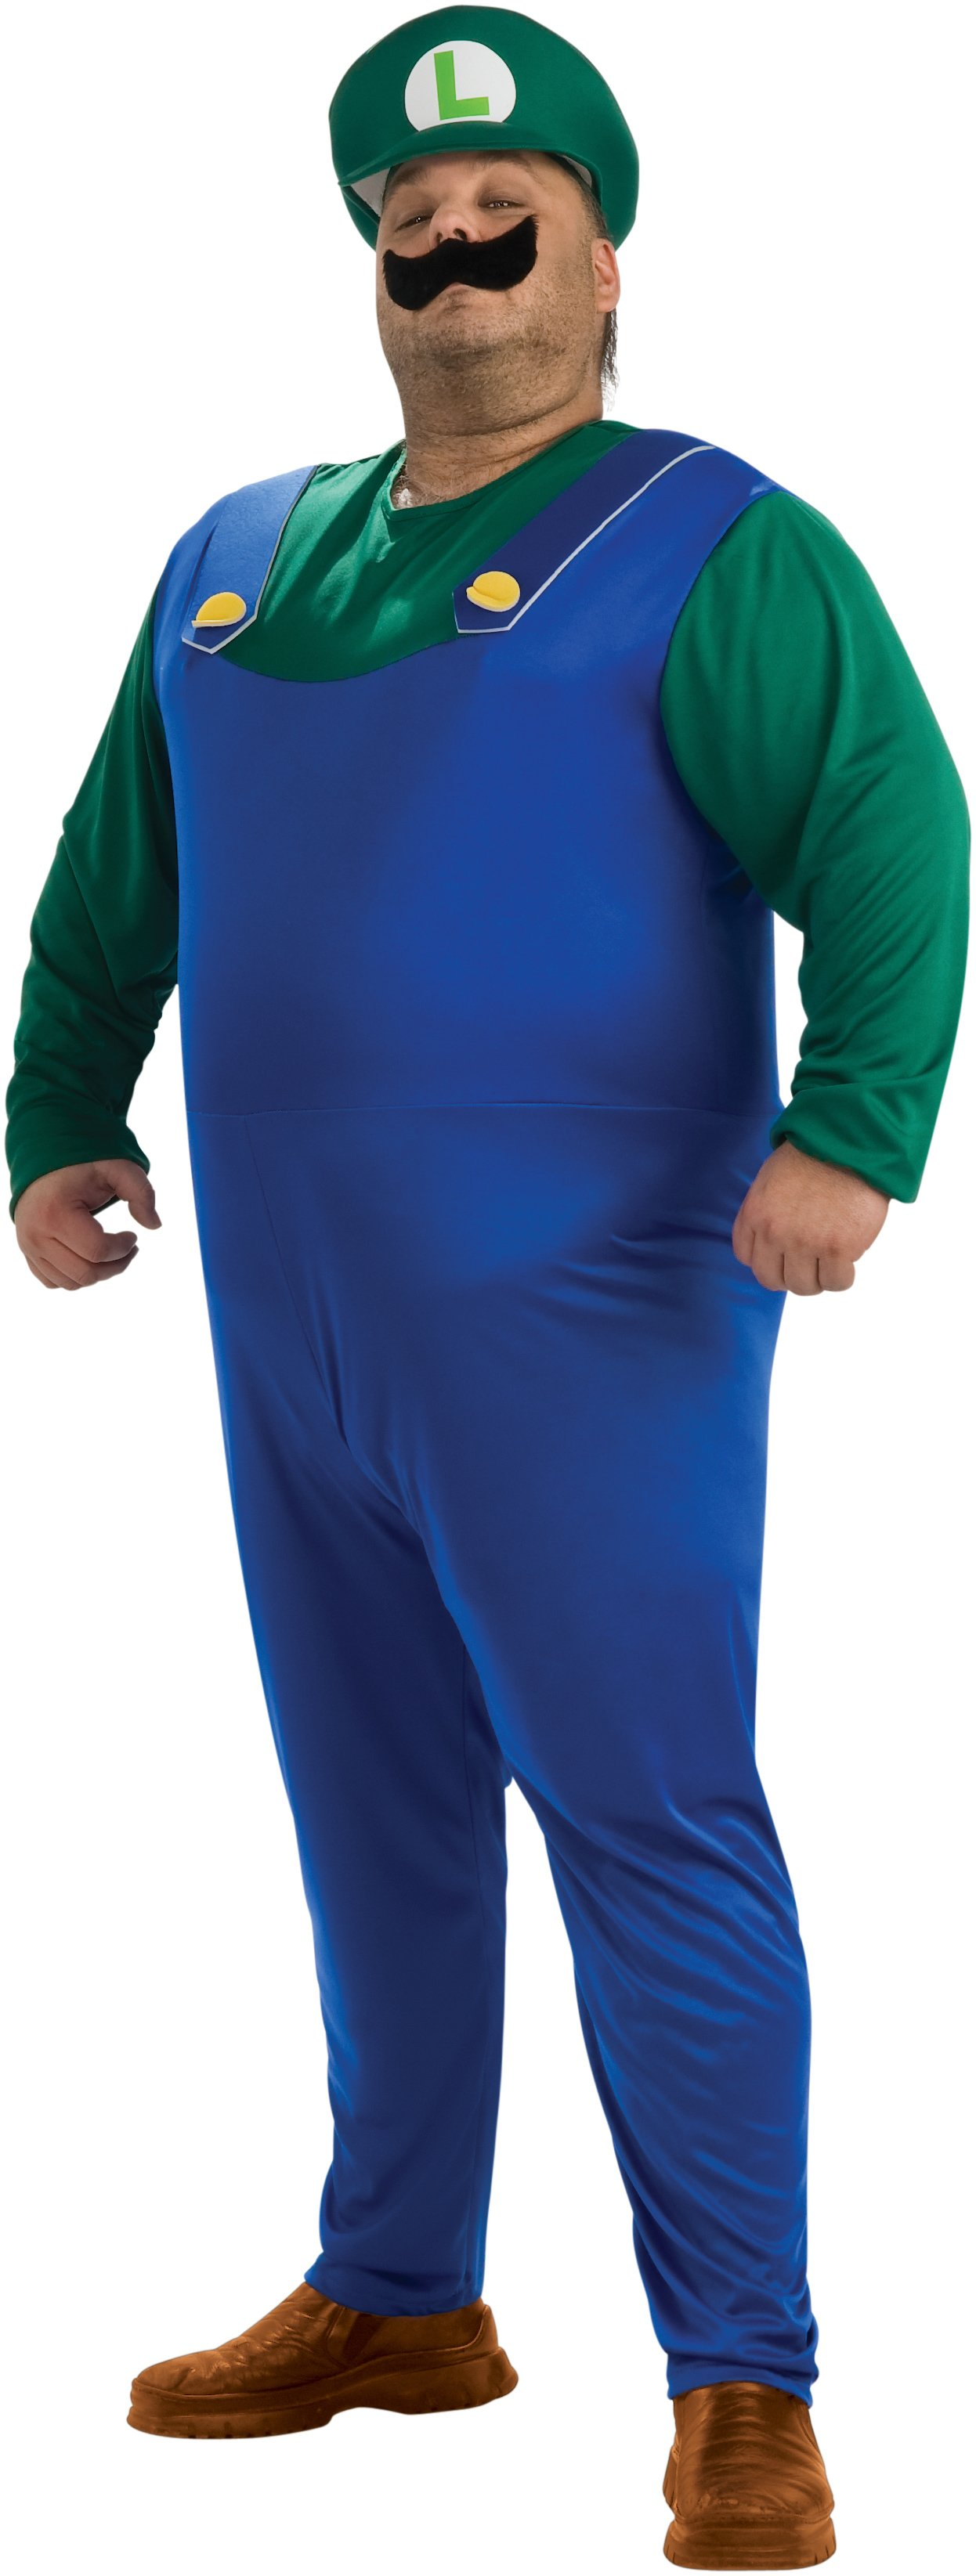 Super Mario Bros. - Luigi Adult Plus Costume